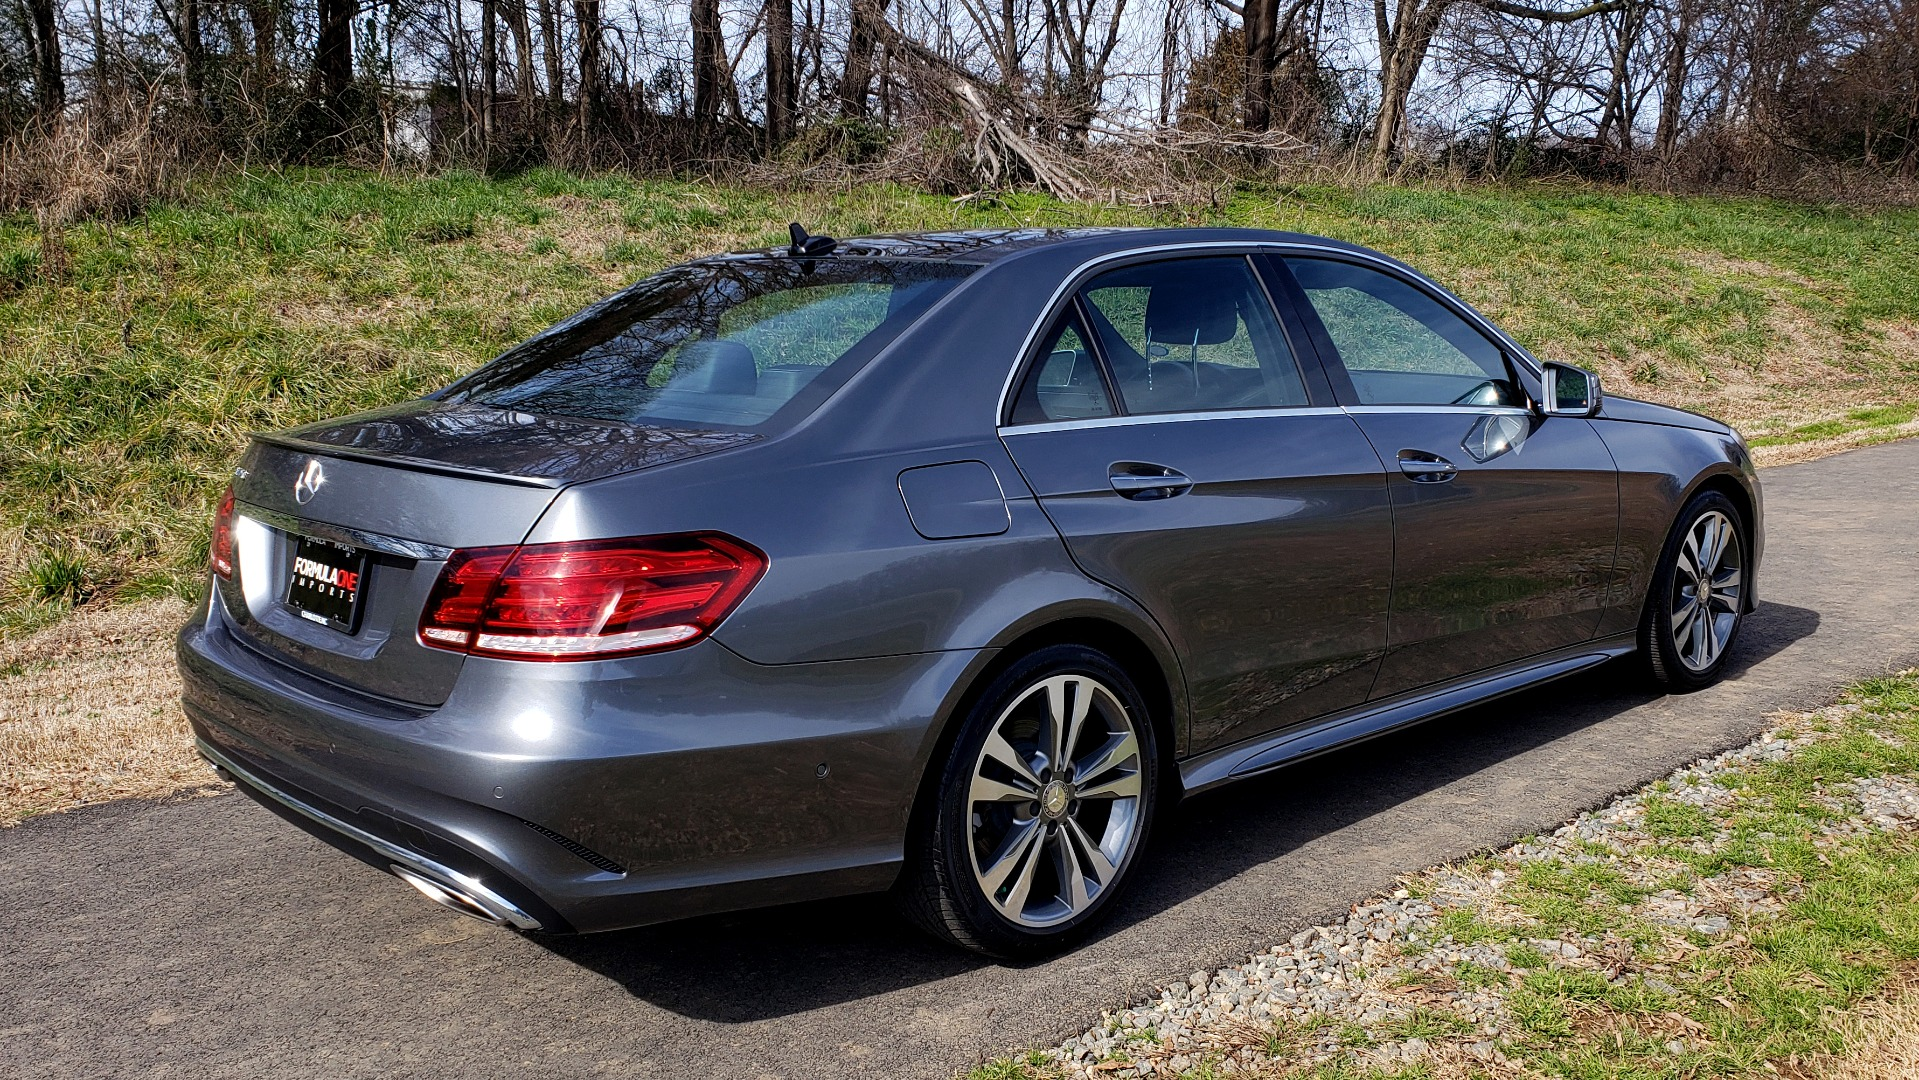 Used 2016 Mercedes-Benz E-CLASS E 350 PREM / KEYLESS-GO / NAV / SUNROOF / REARVIEW for sale Sold at Formula Imports in Charlotte NC 28227 6